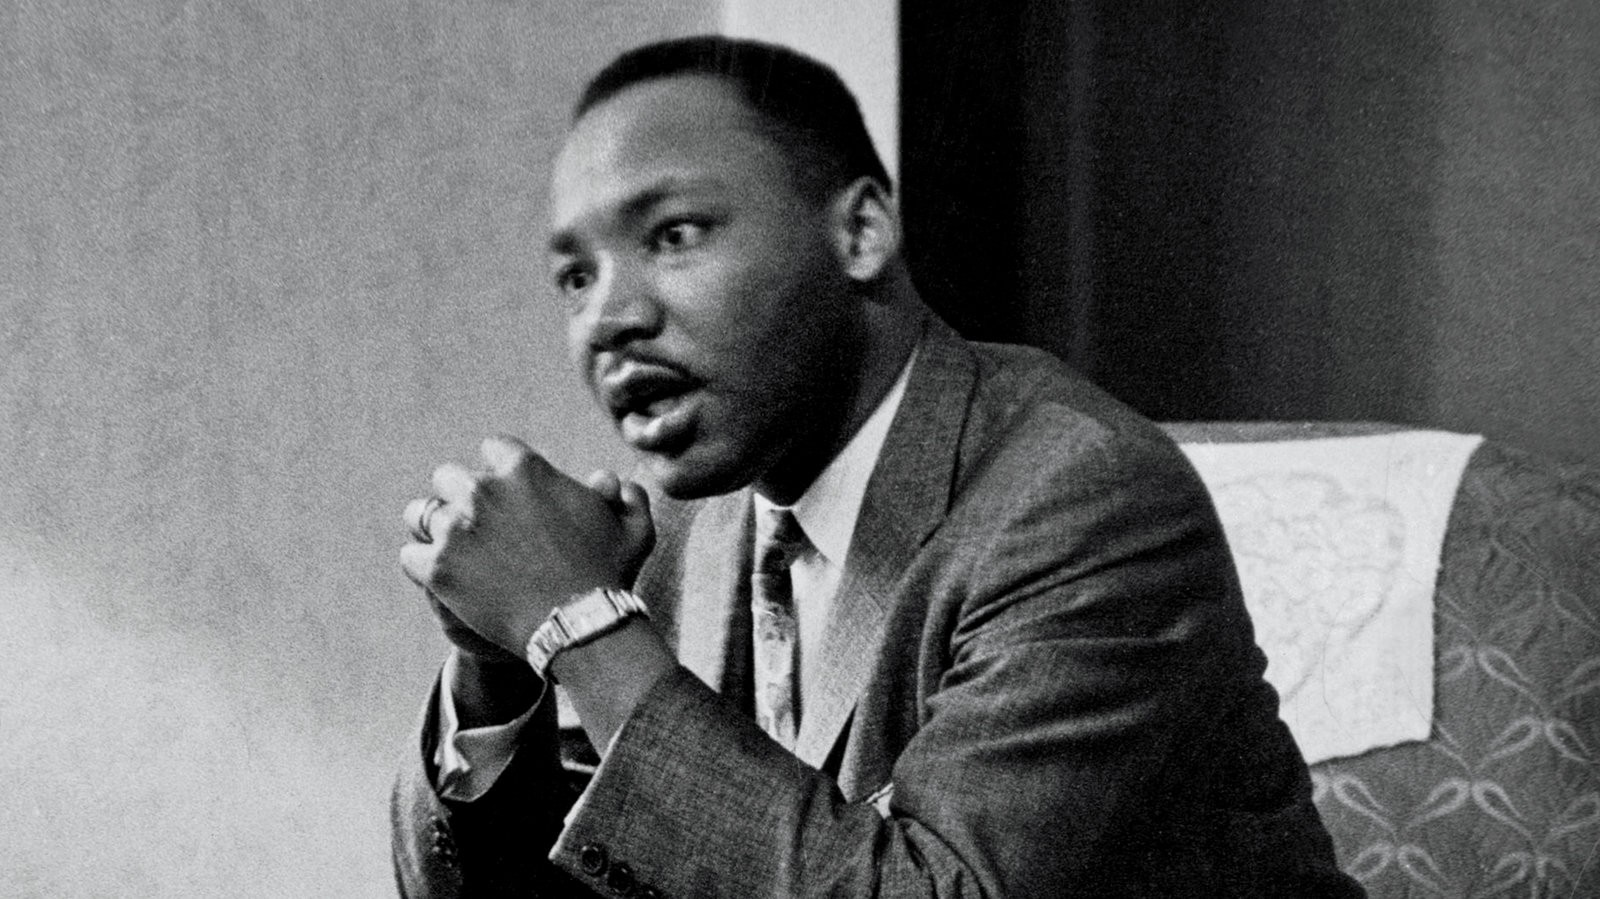 A black and white photo of Dr. Martin Luther King Jr. He is seated with his hands clasped in front of him, talking to someone to the left of the frame.